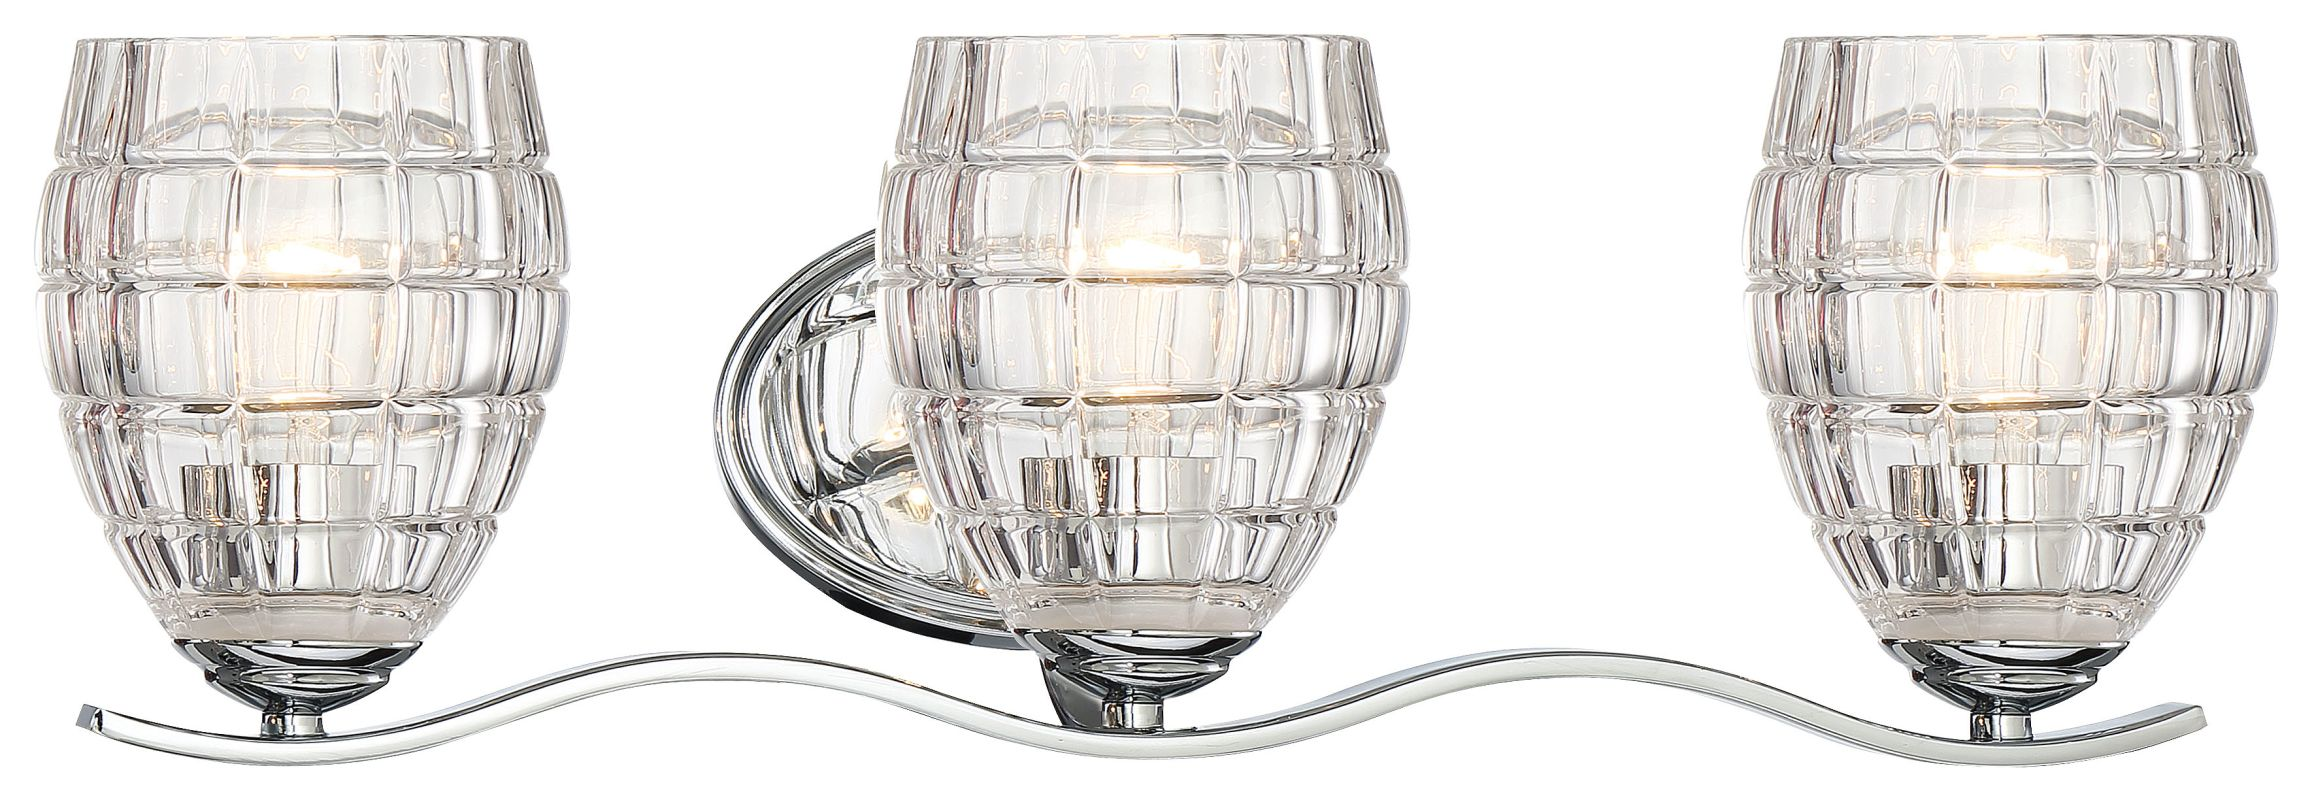 Minka Lavery 3423-77 3 Light Vanity Light from the Austine Collection